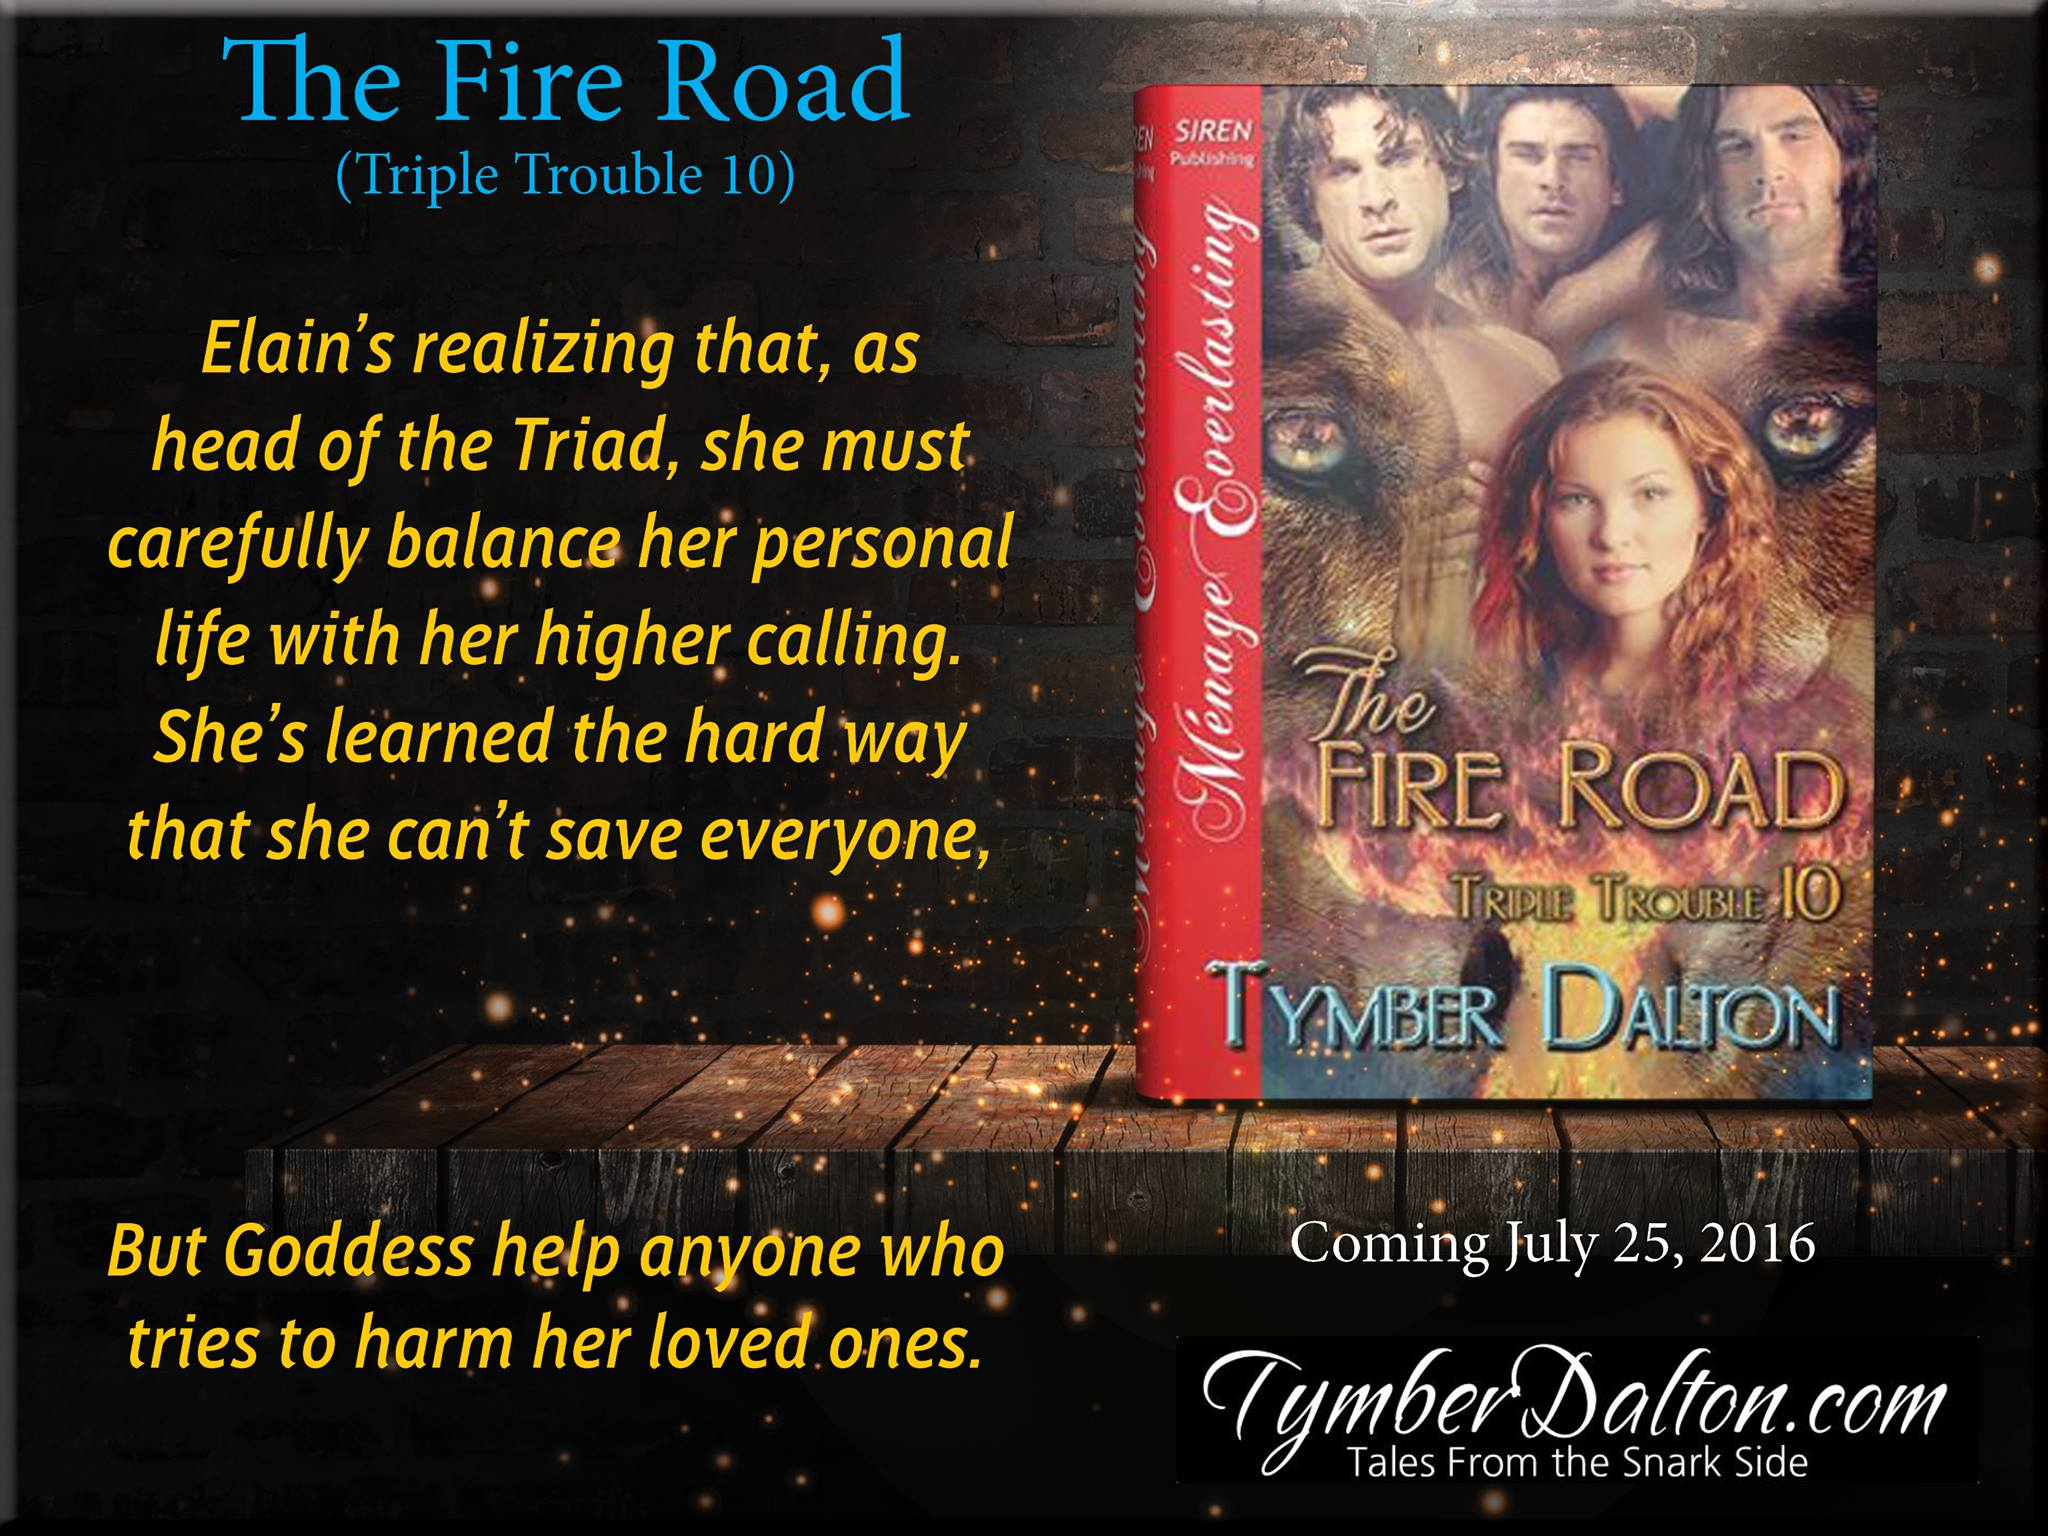 Is it Monday yet? Sneak peeks for The Fire Road (Triple Trouble 10).